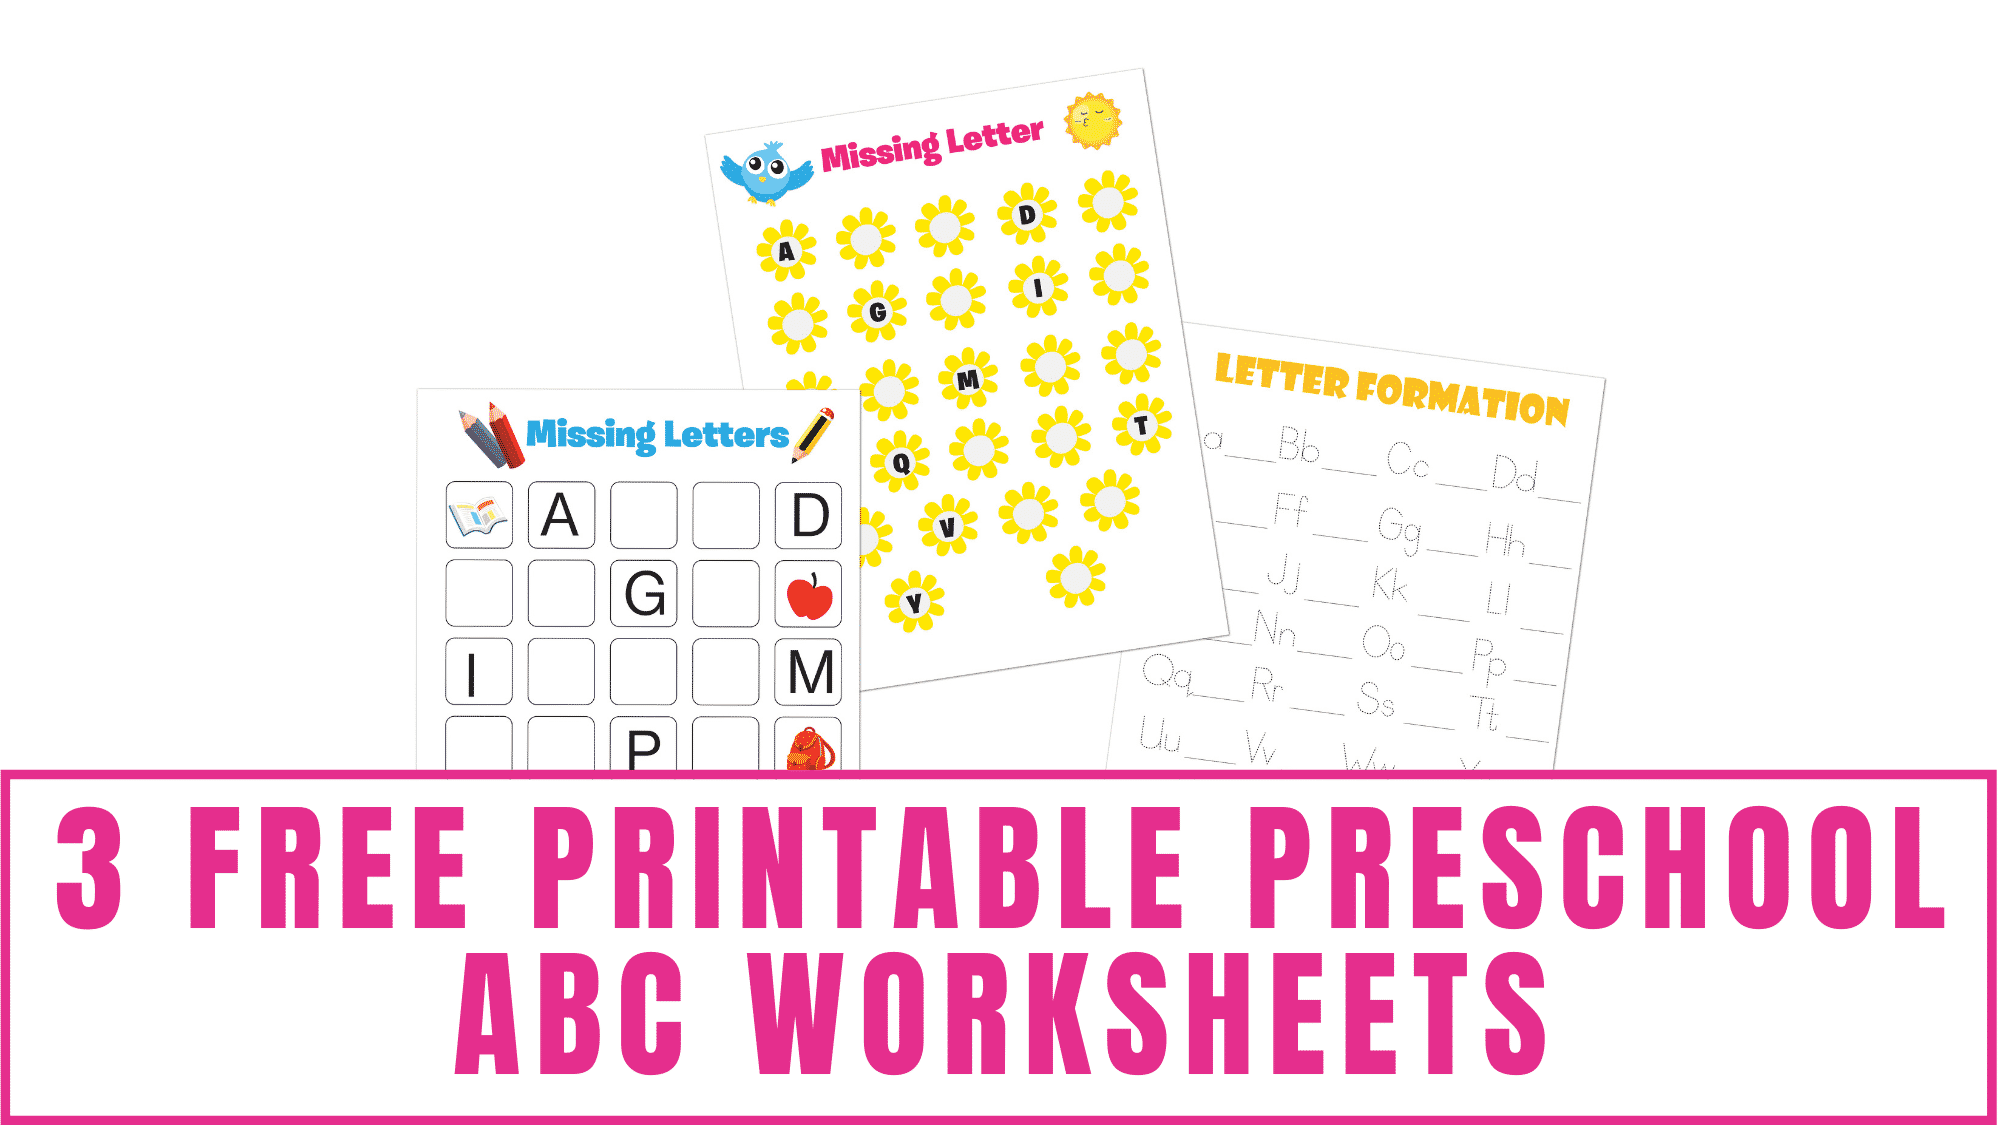 Help your kid learn how to write letters by using these free printable preschool ABC worksheets. Here they can work on letter tracing, writing letters, and letter recognition.